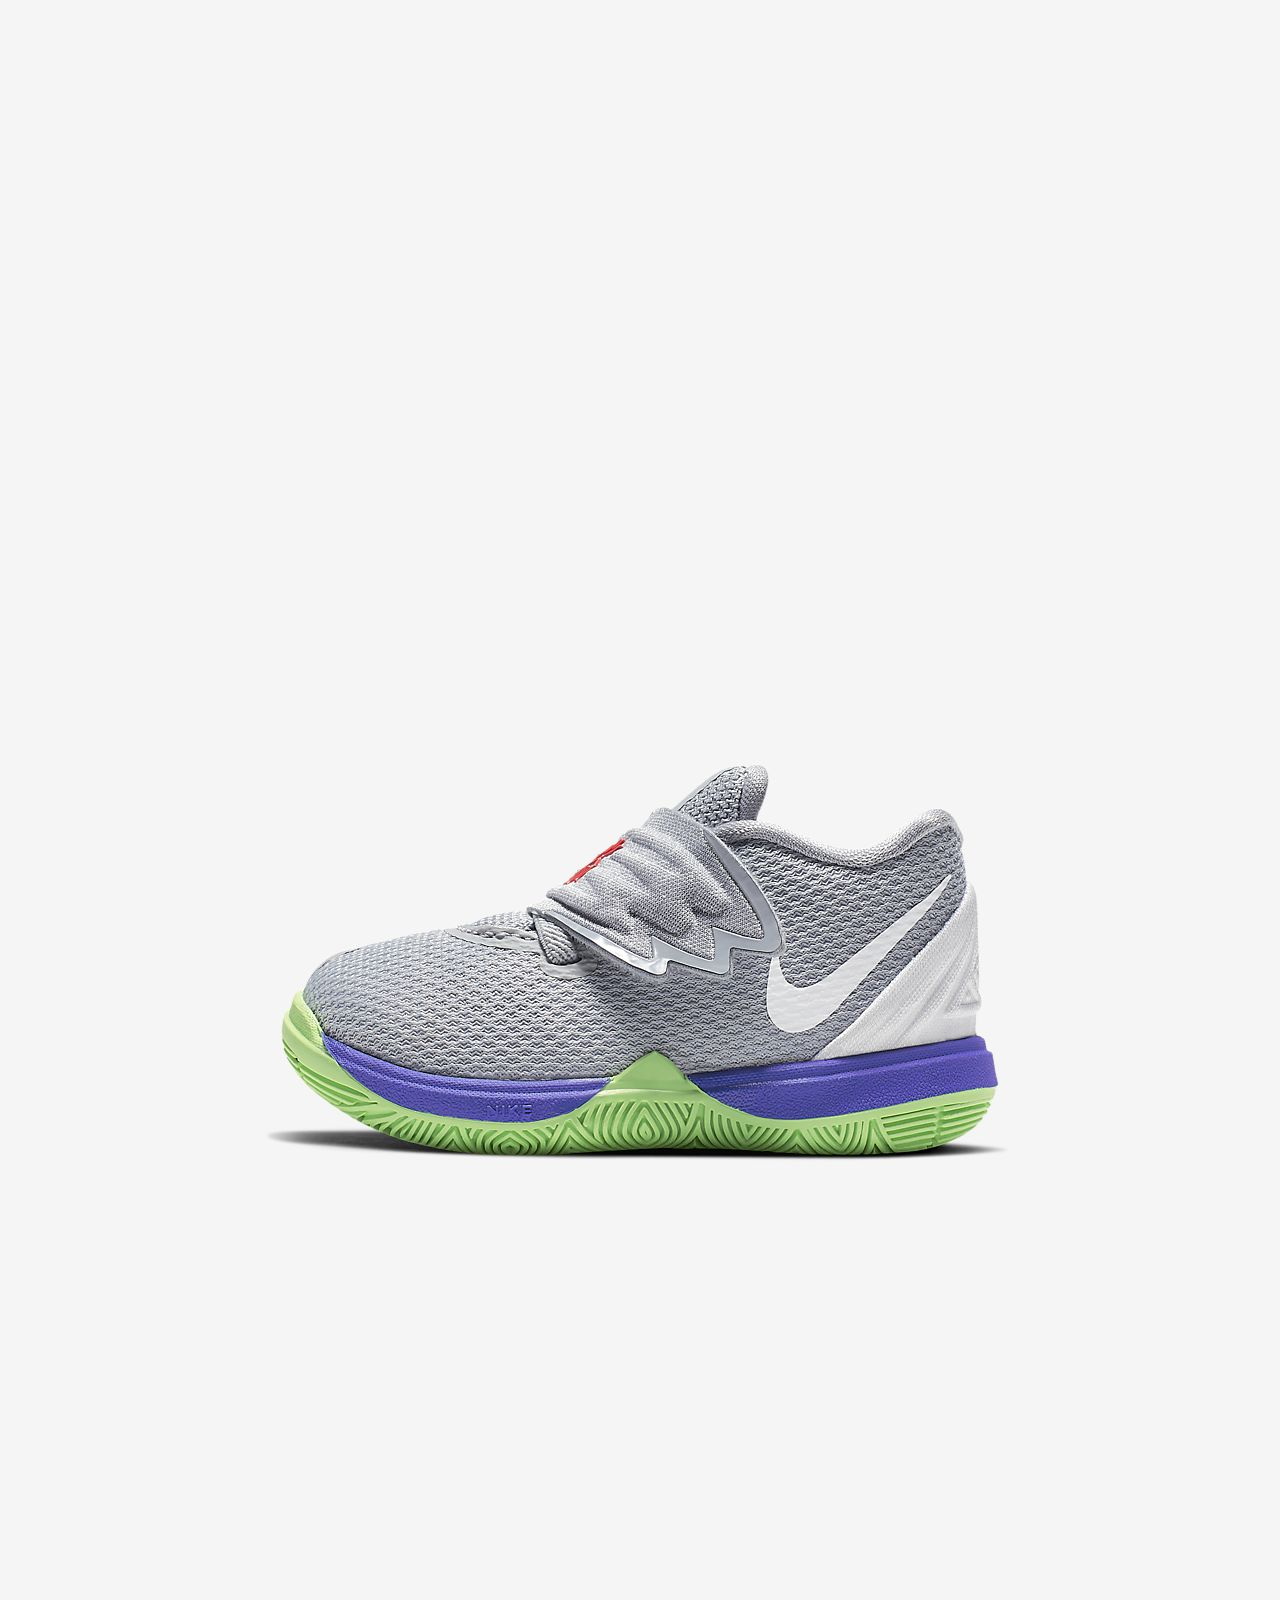 Kyrie 5 Baby/Toddler Shoe